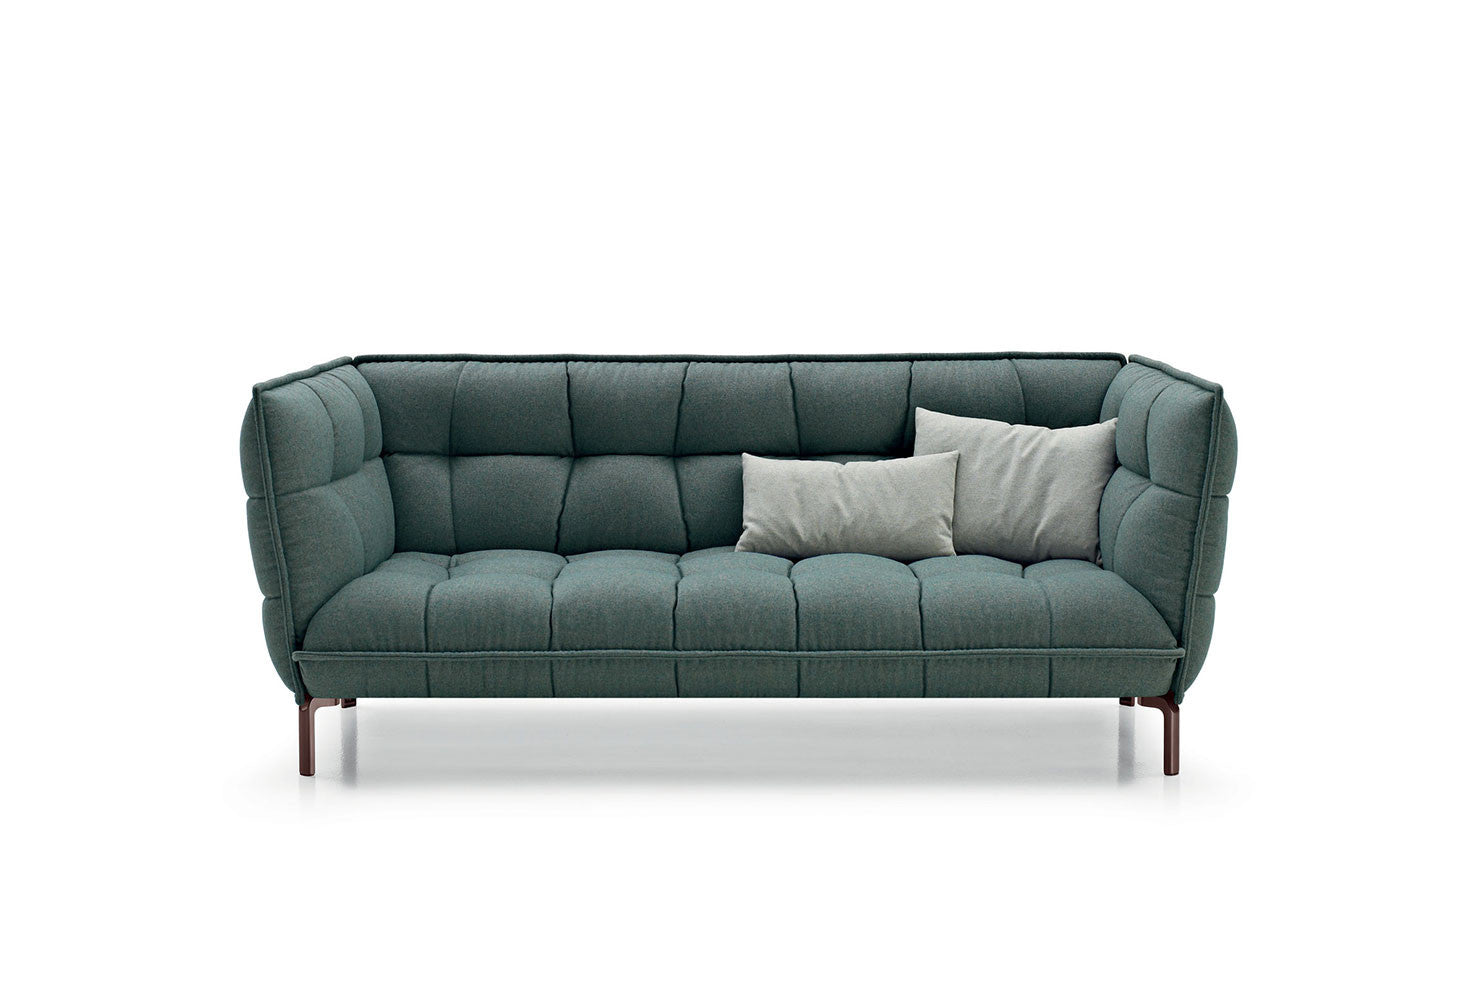 B b husk sofa reproduction the modern source - Husk chair replica ...